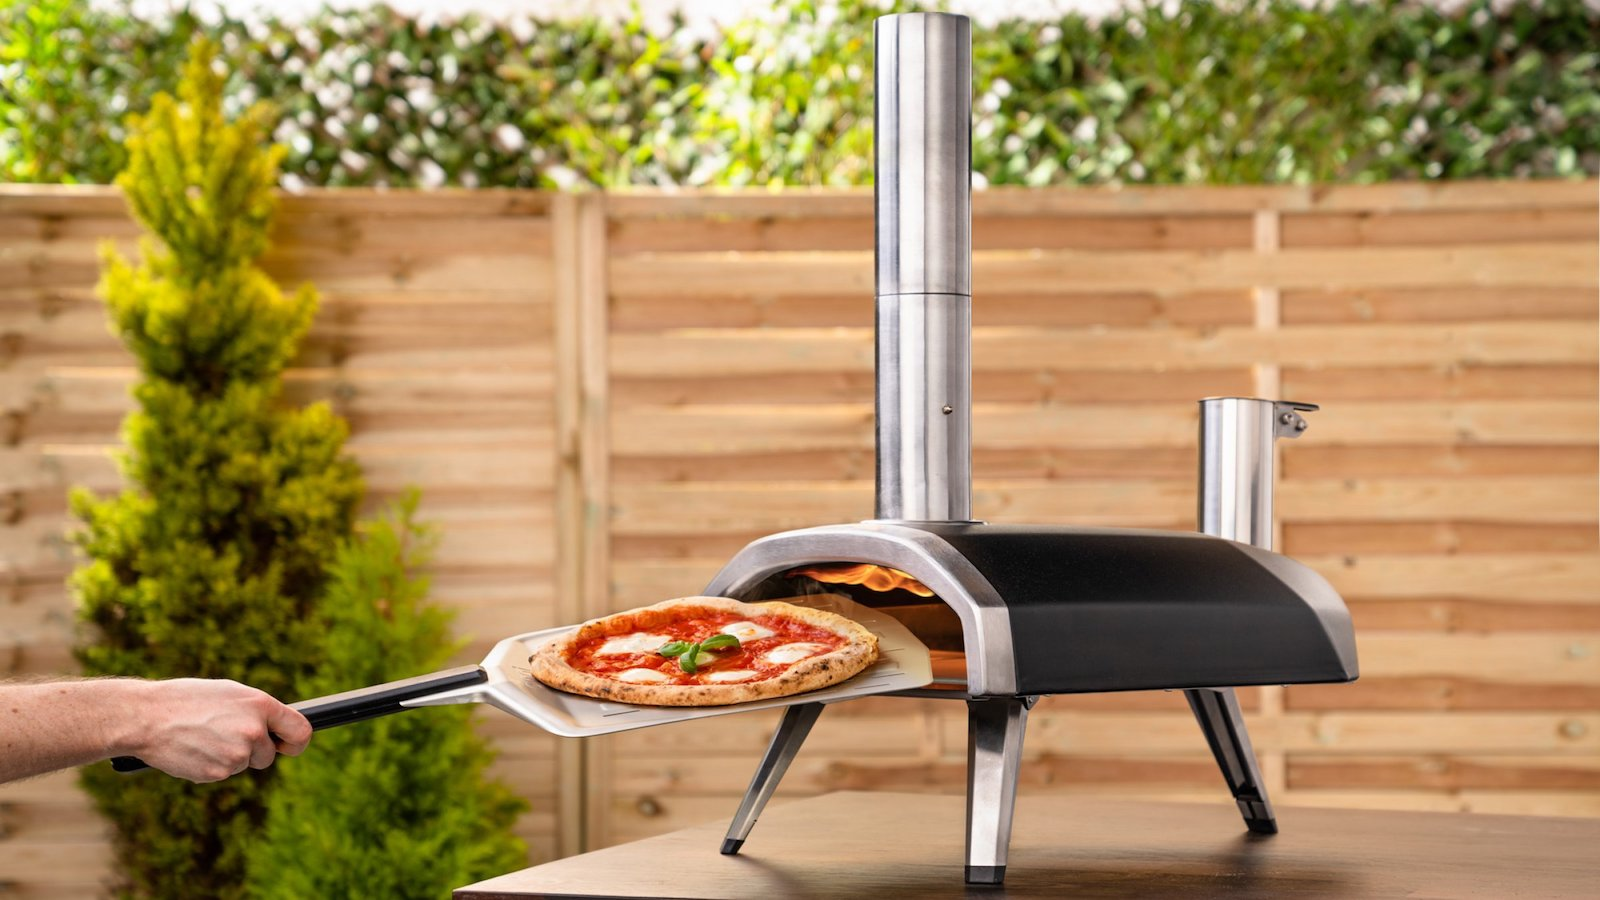 Ooni Fyra 12 wood pellet pizza oven reaches 950°F and cooks pizza in 60 seconds